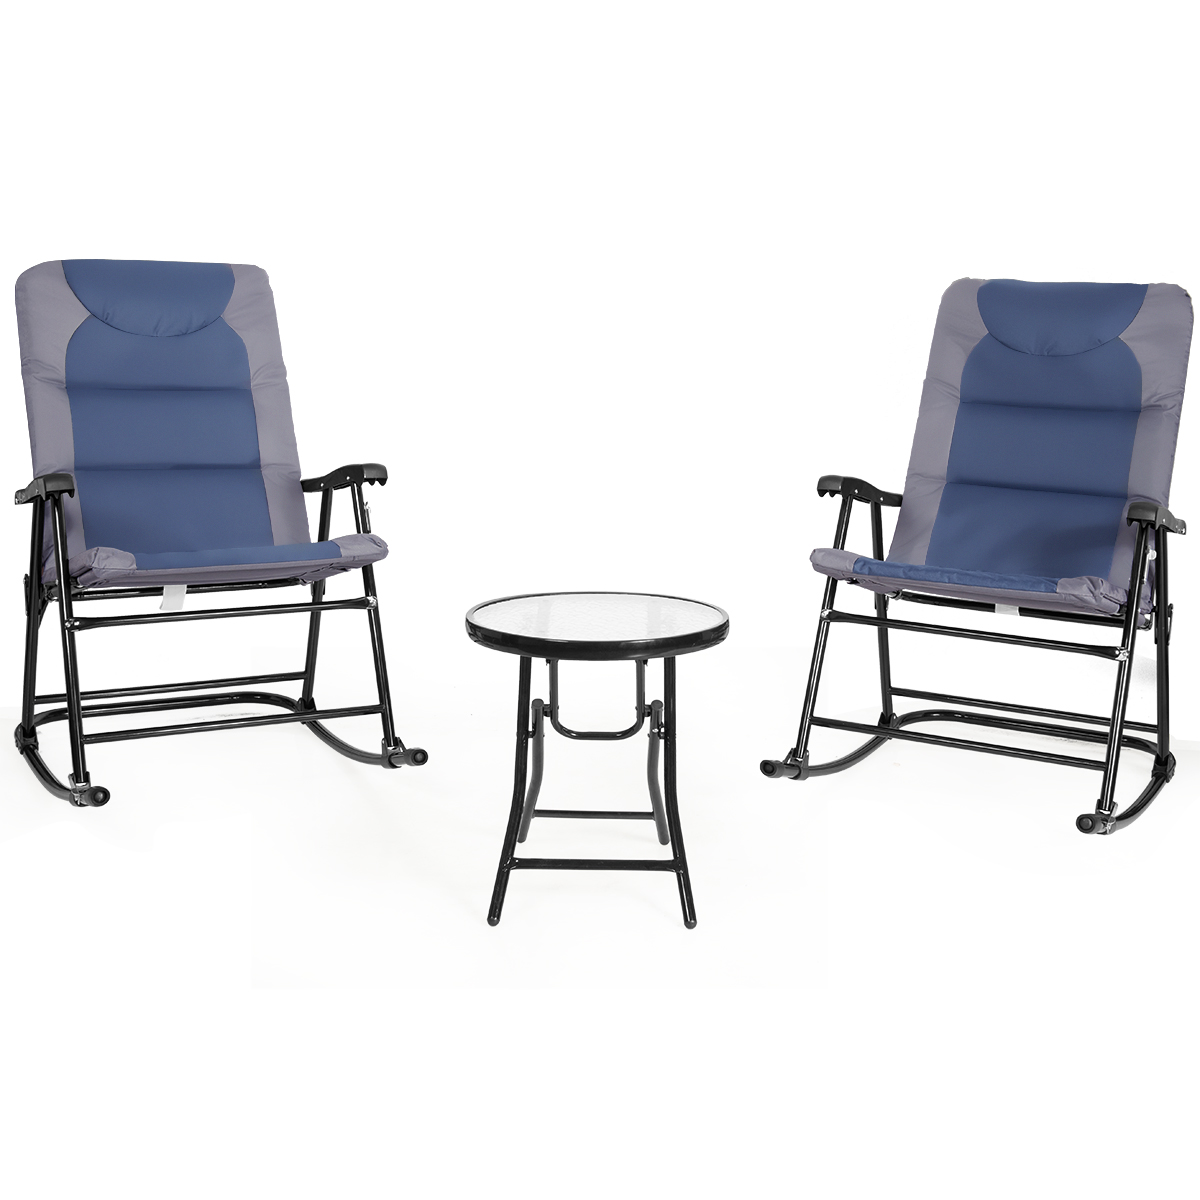 Costway 3PCS Folding Bistro Set Rocking Chair Cushioned Table Garden Blue